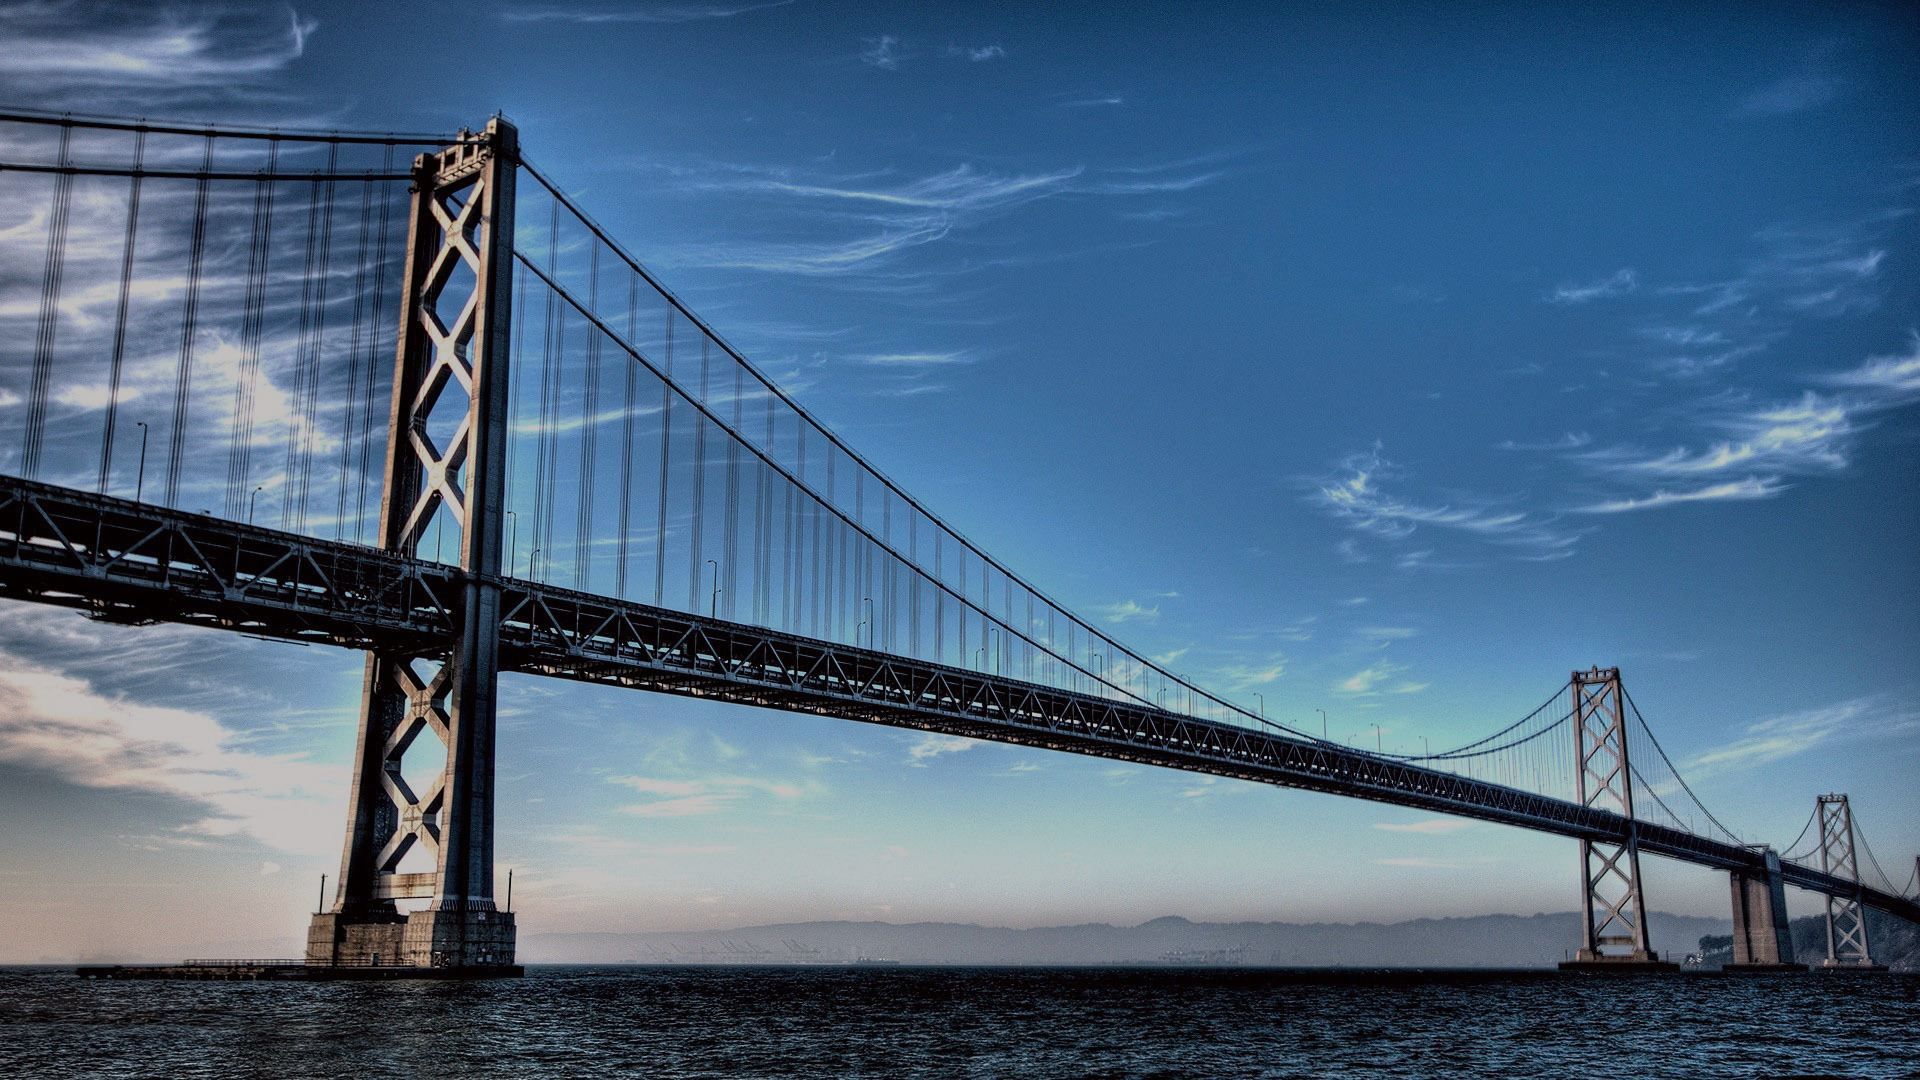 Header Image of Bridge